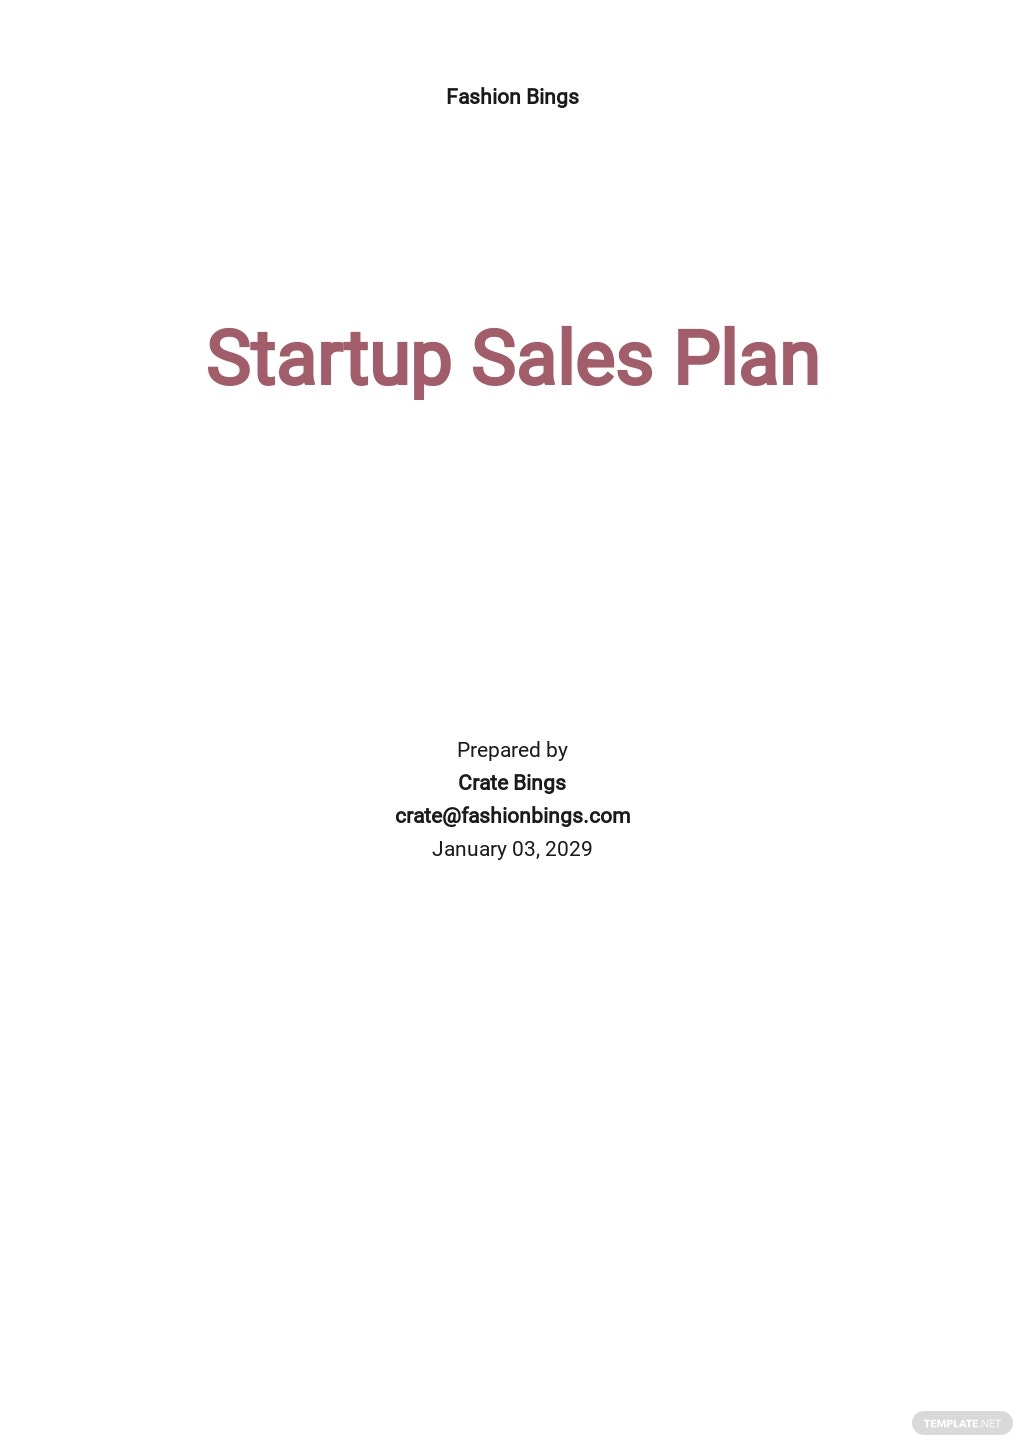 Startup Sales Plan Template [Free PDF] - Google Docs, Word, Apple Pages